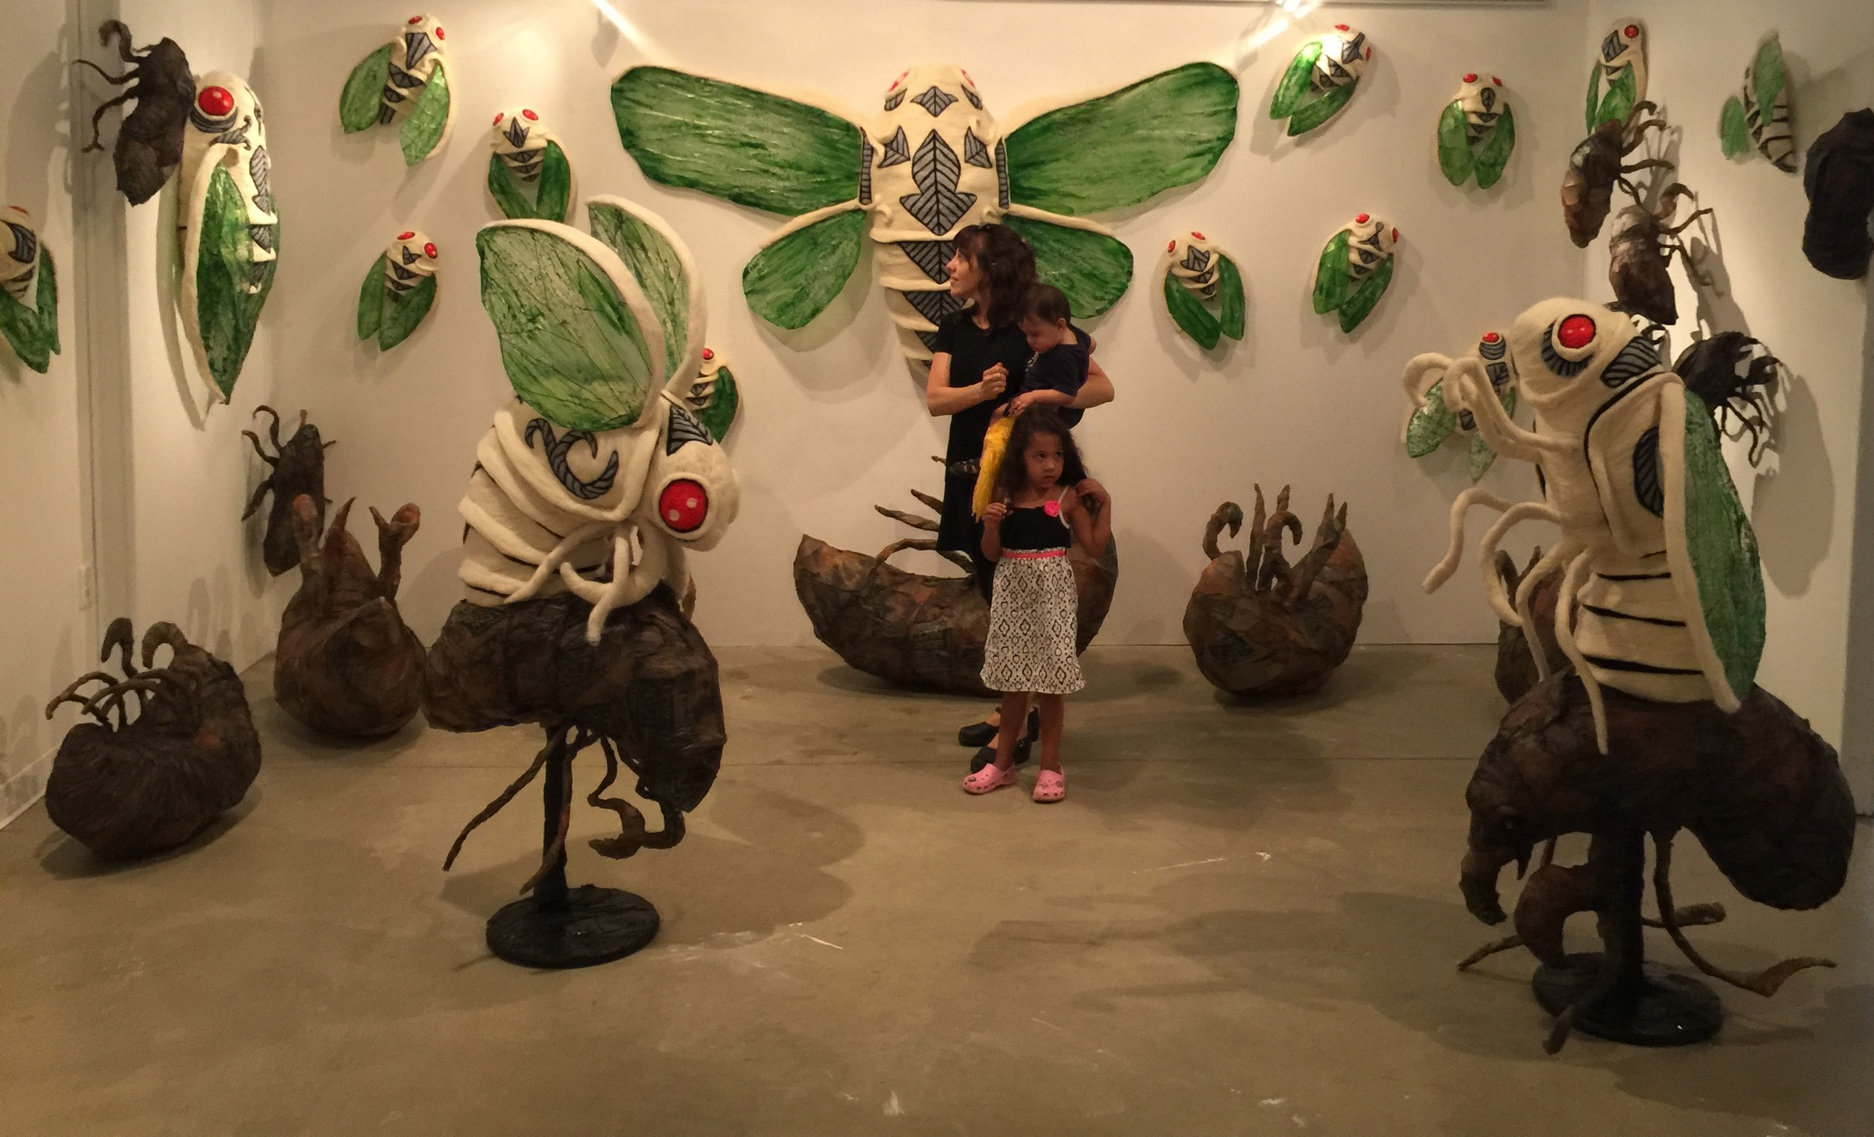 Visitors with Ryan Lytle's  Emergence  installation